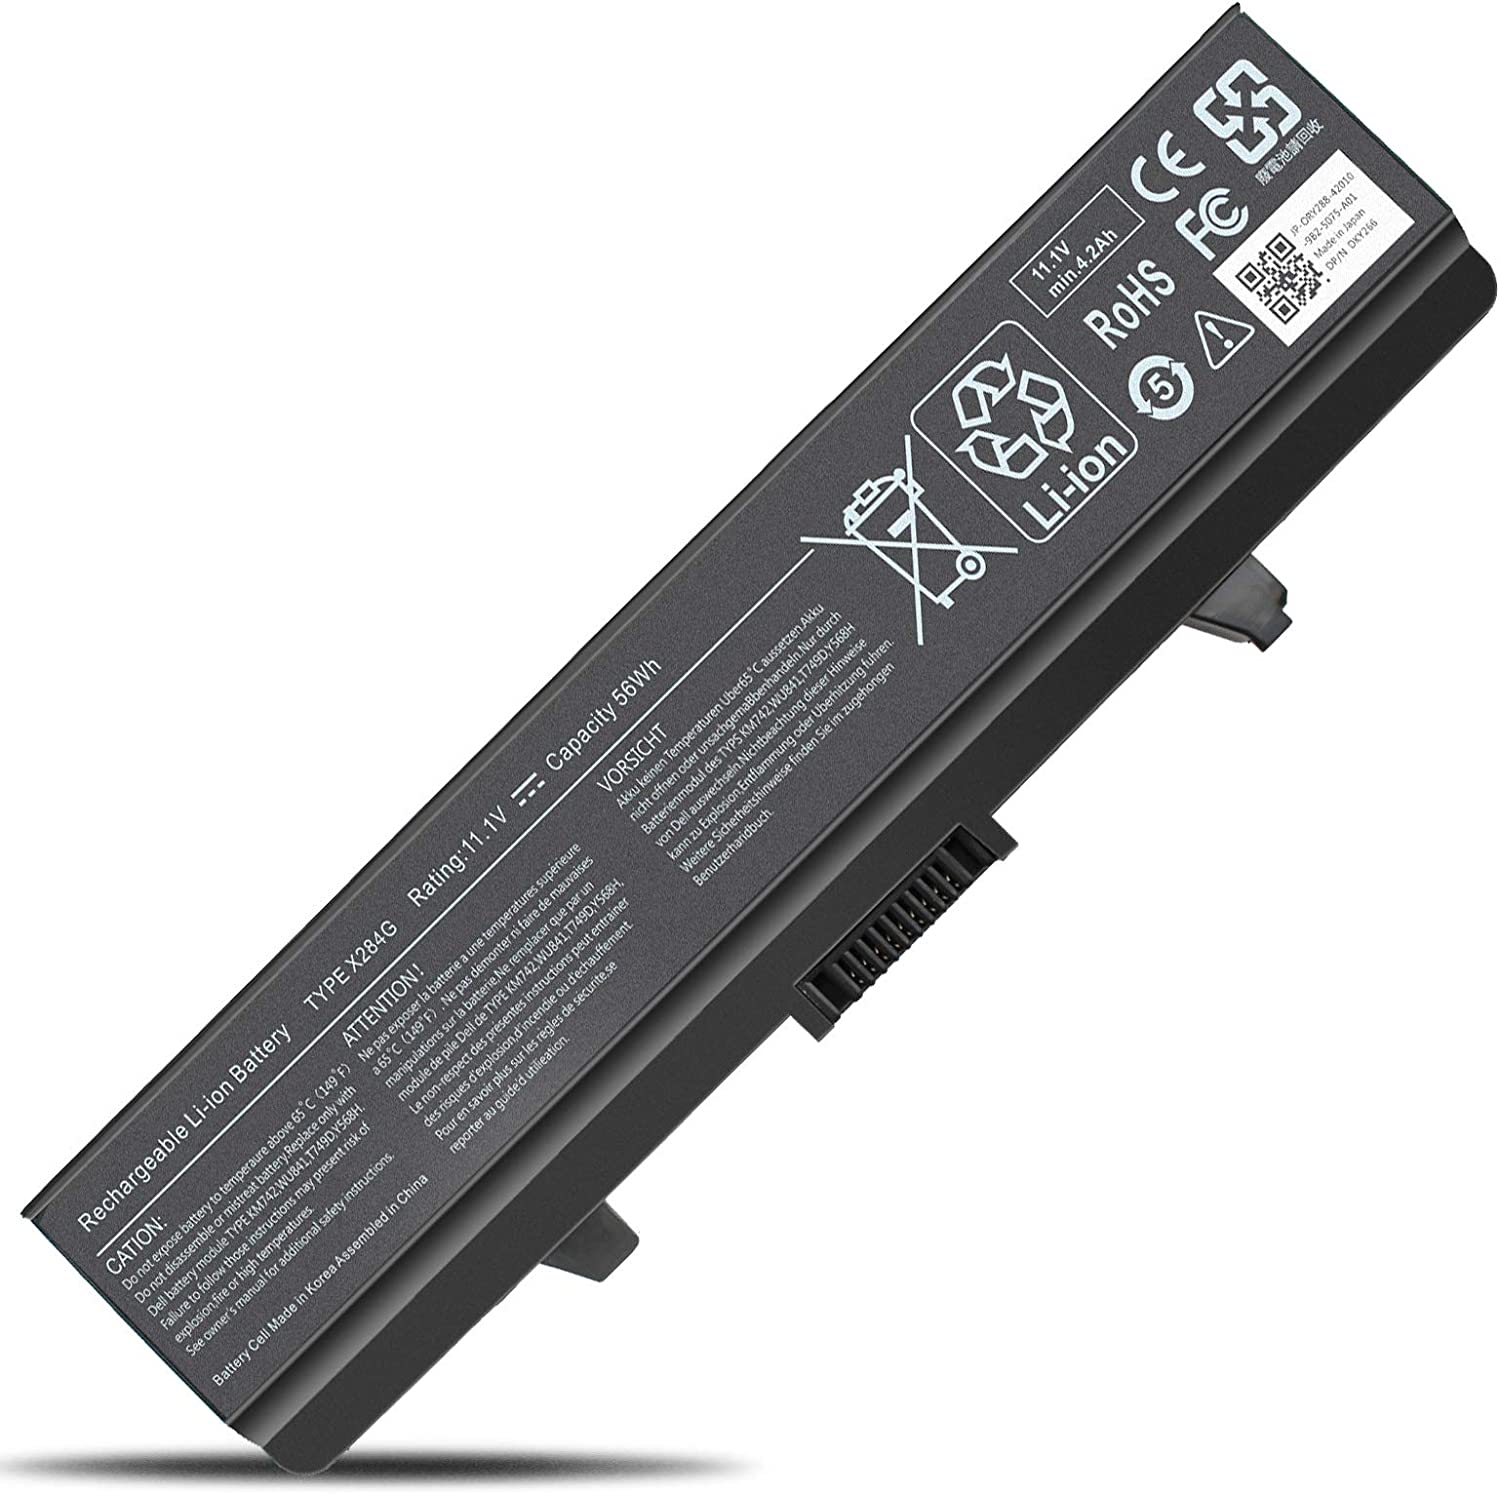 LXHY X284G 11.1V 56Wh Laptop Battery Compatible with Dell Inspiron 1525 1526 1545 1546 PP29L PP41L 14 1440 1440N 17 1750, Vostro 500 Series 6 Cells Replacement GW240 X284G K450N HP277 RU59